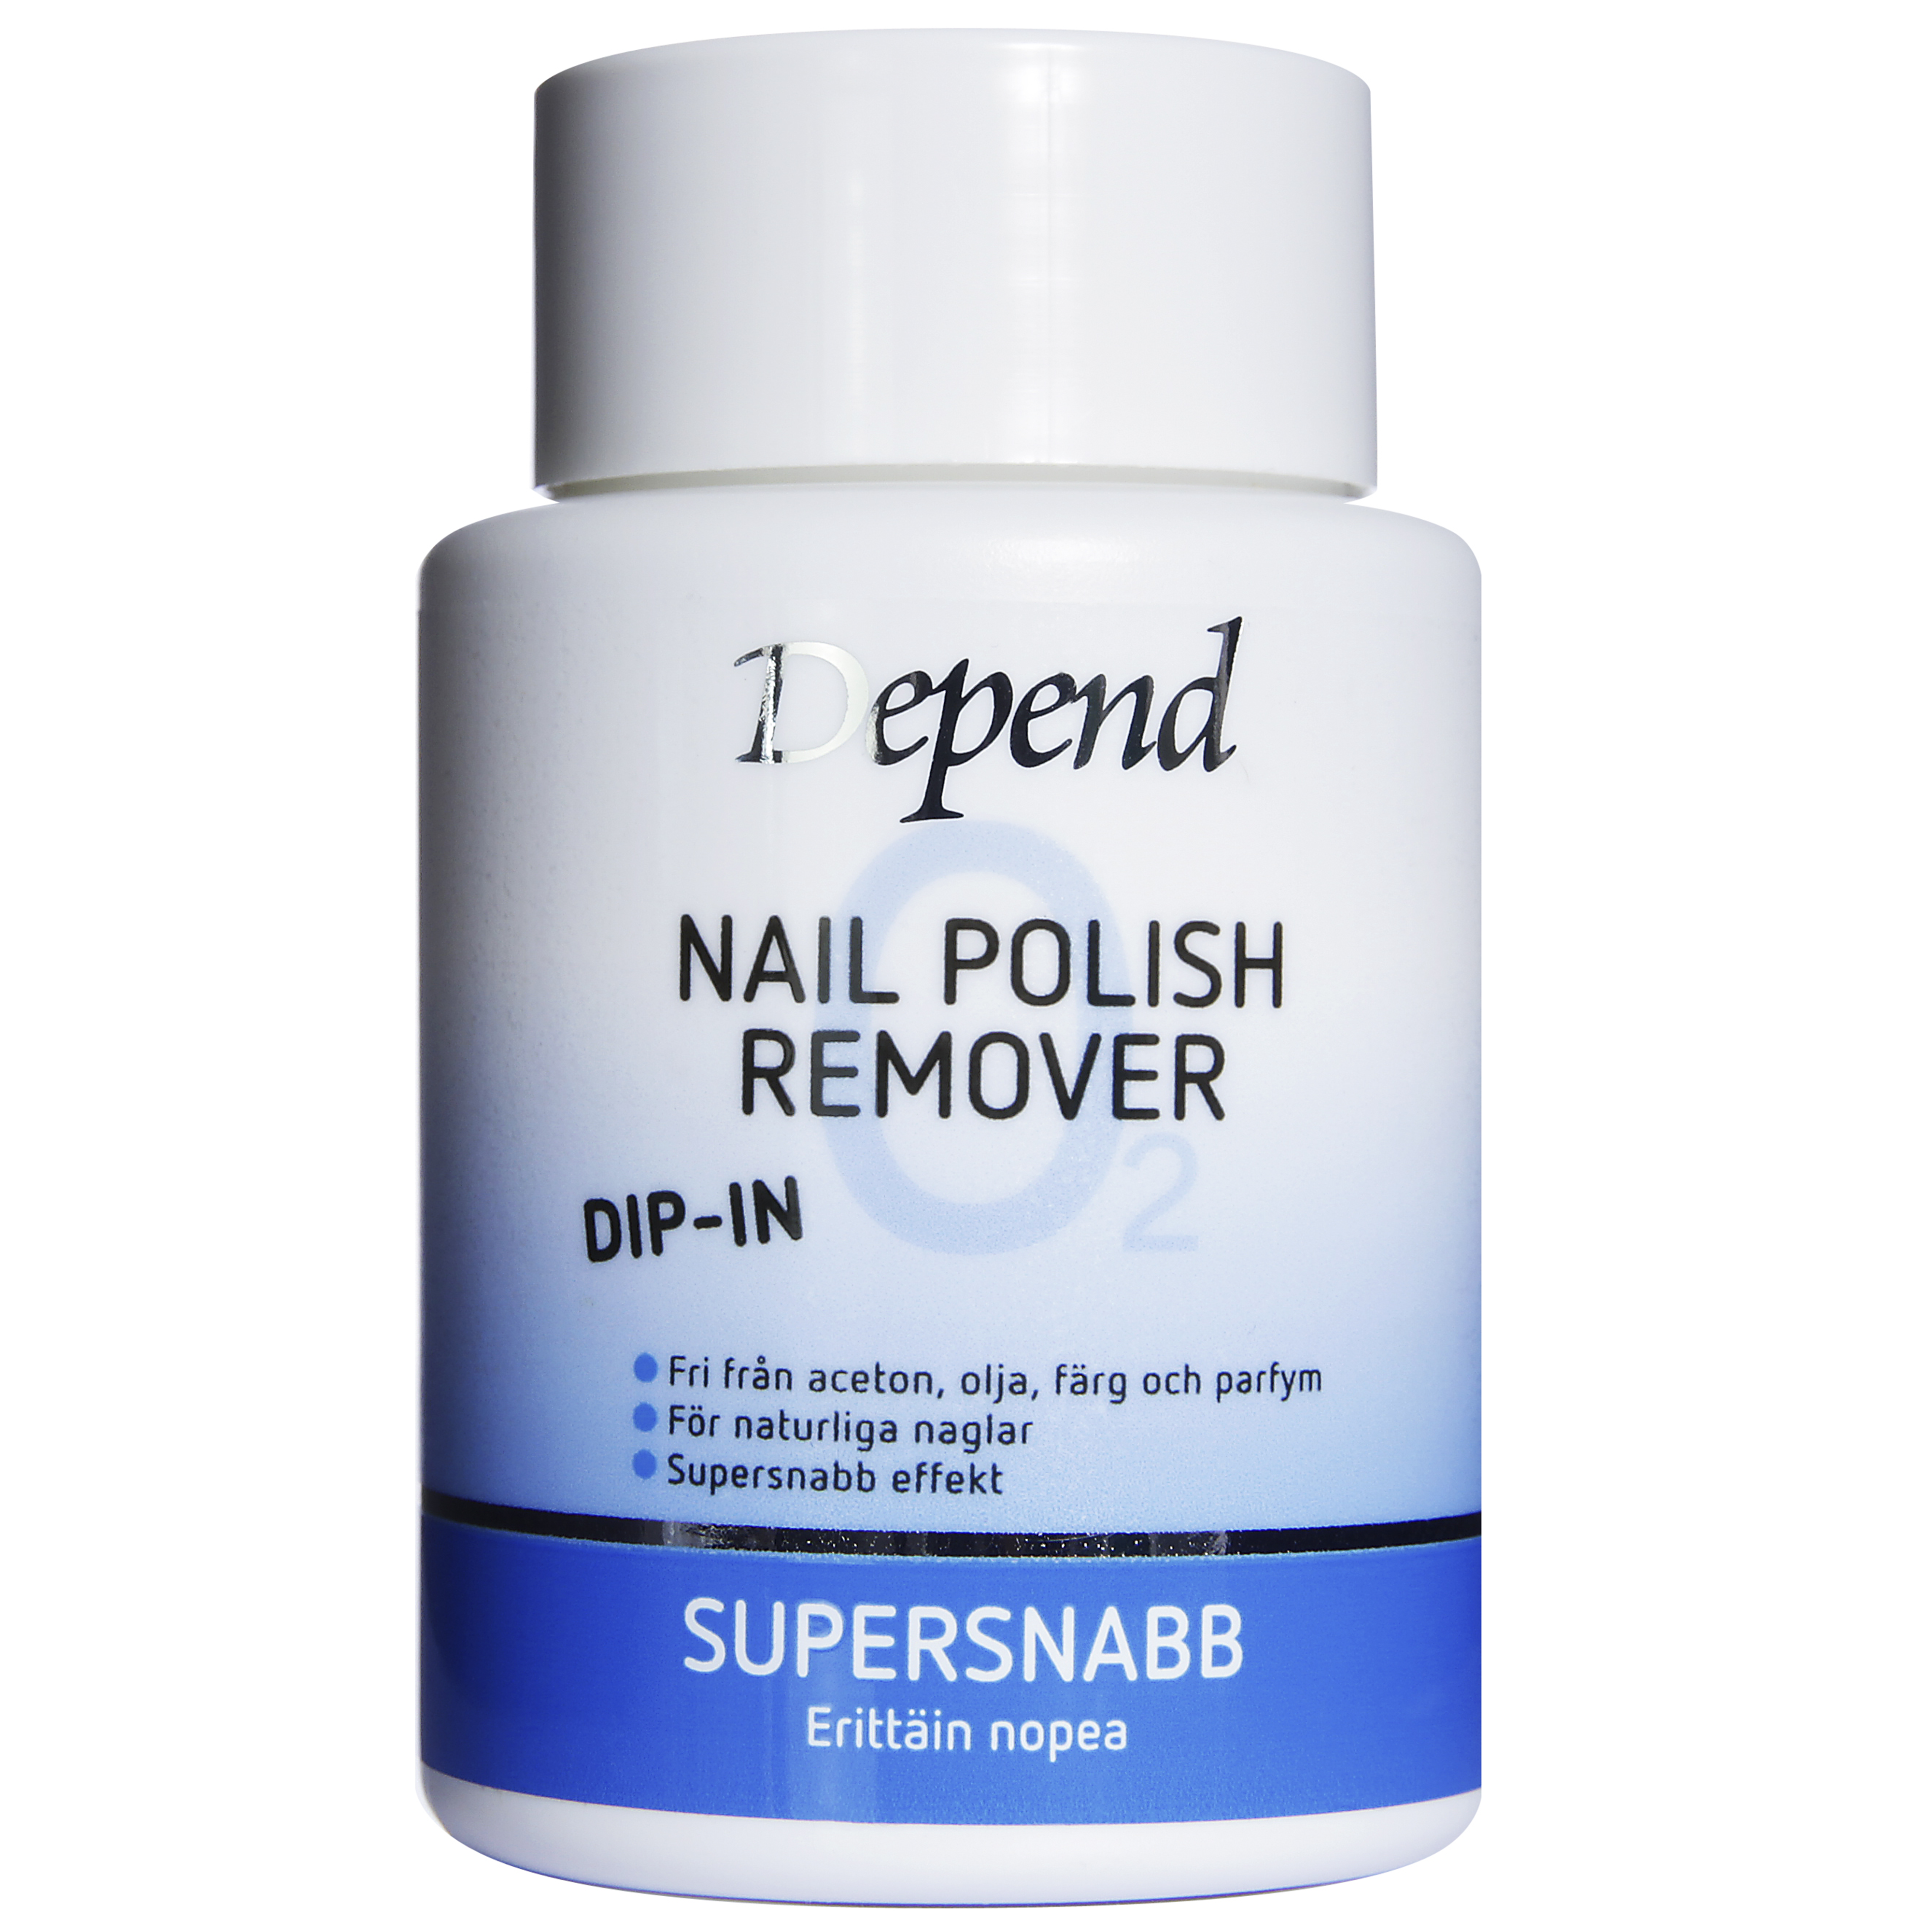 Dip-in Remover Supersnabb